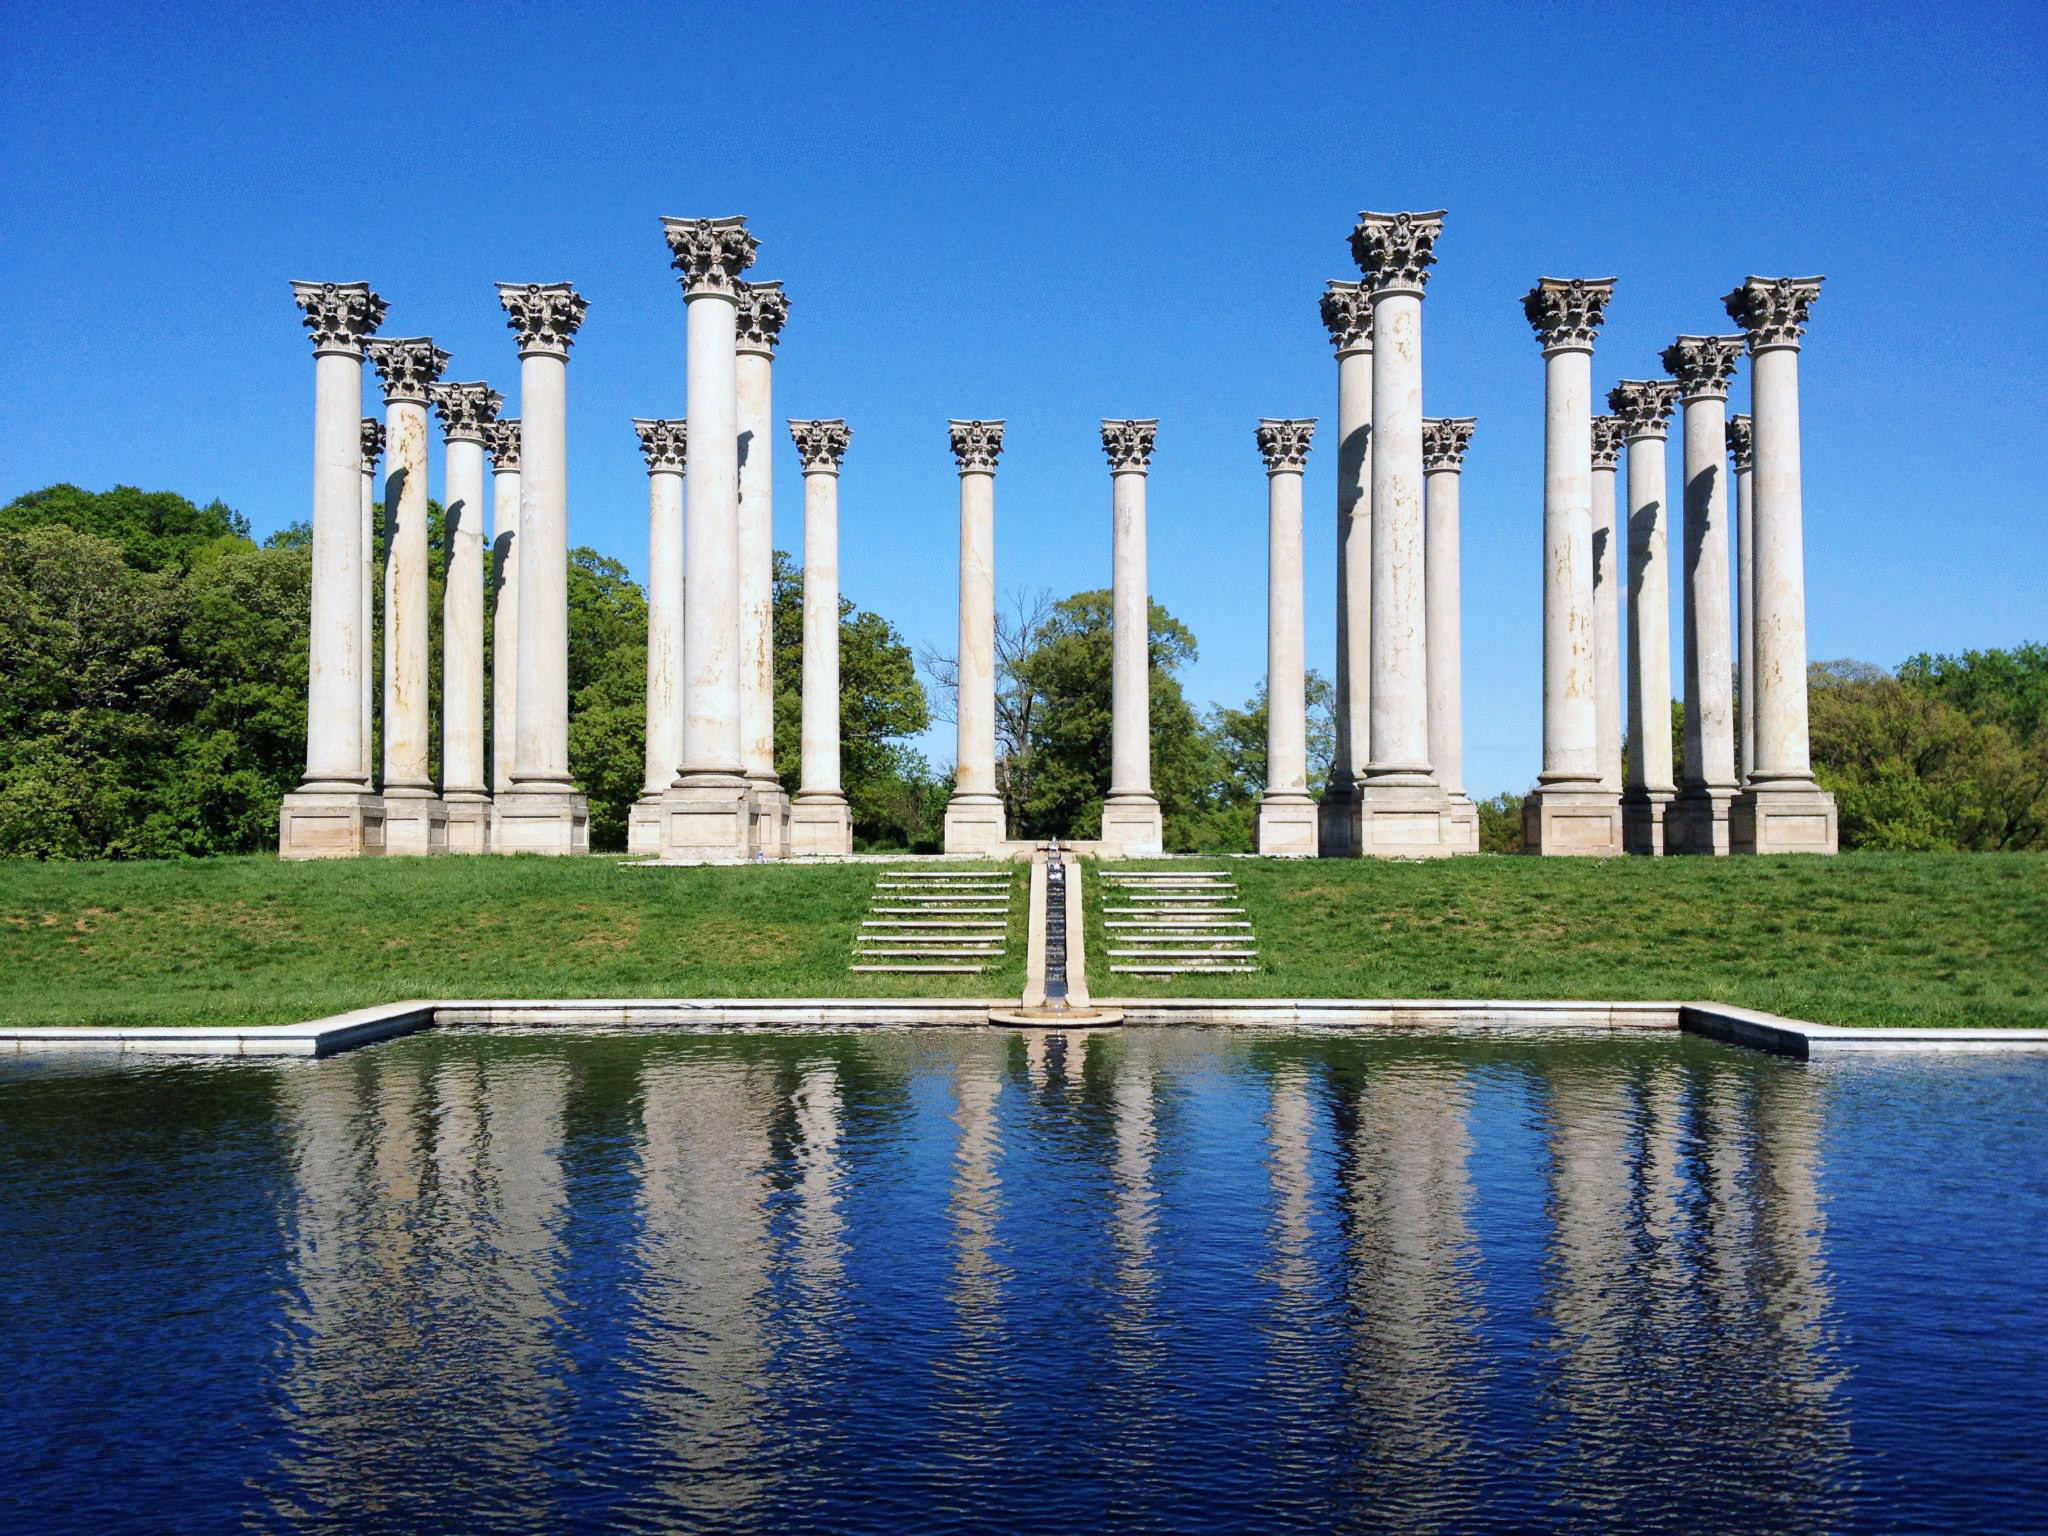 The Capital Columns at the US National Arboretum